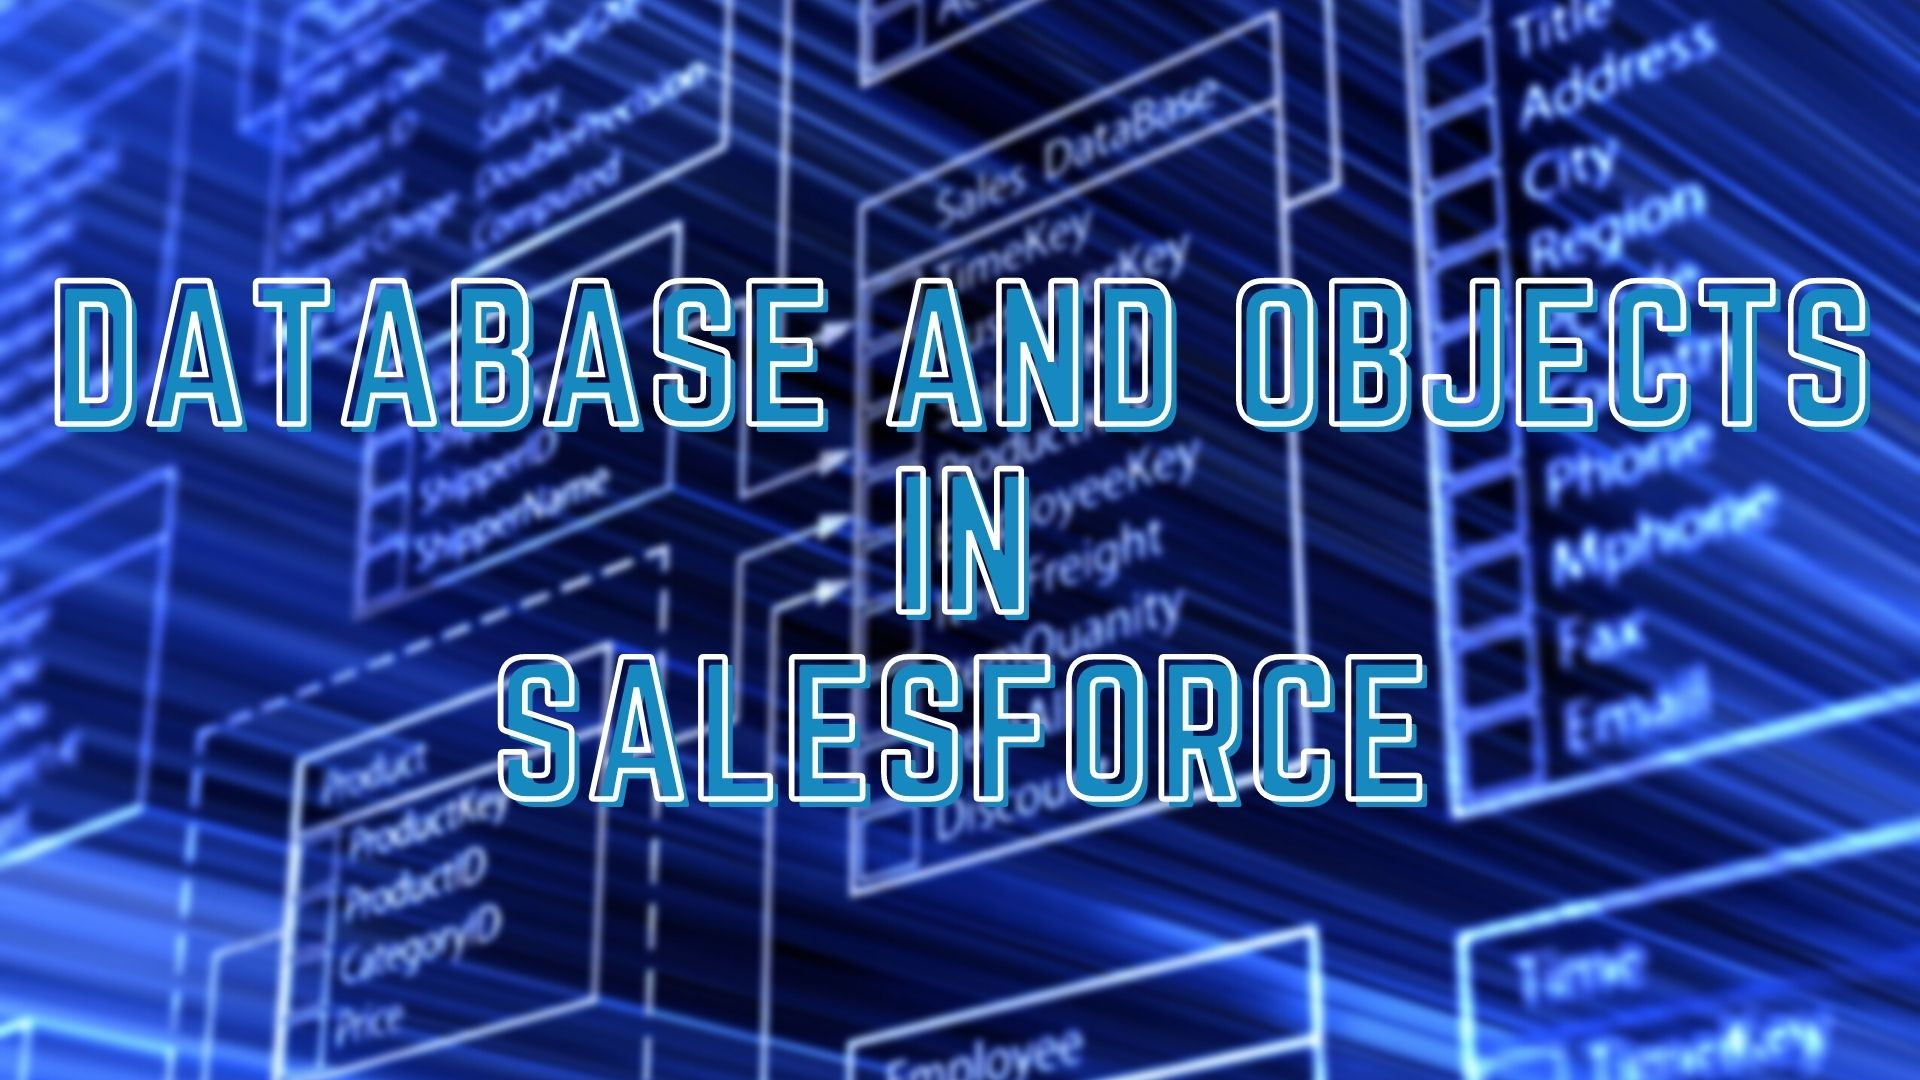 Database and Objects in Salesforce